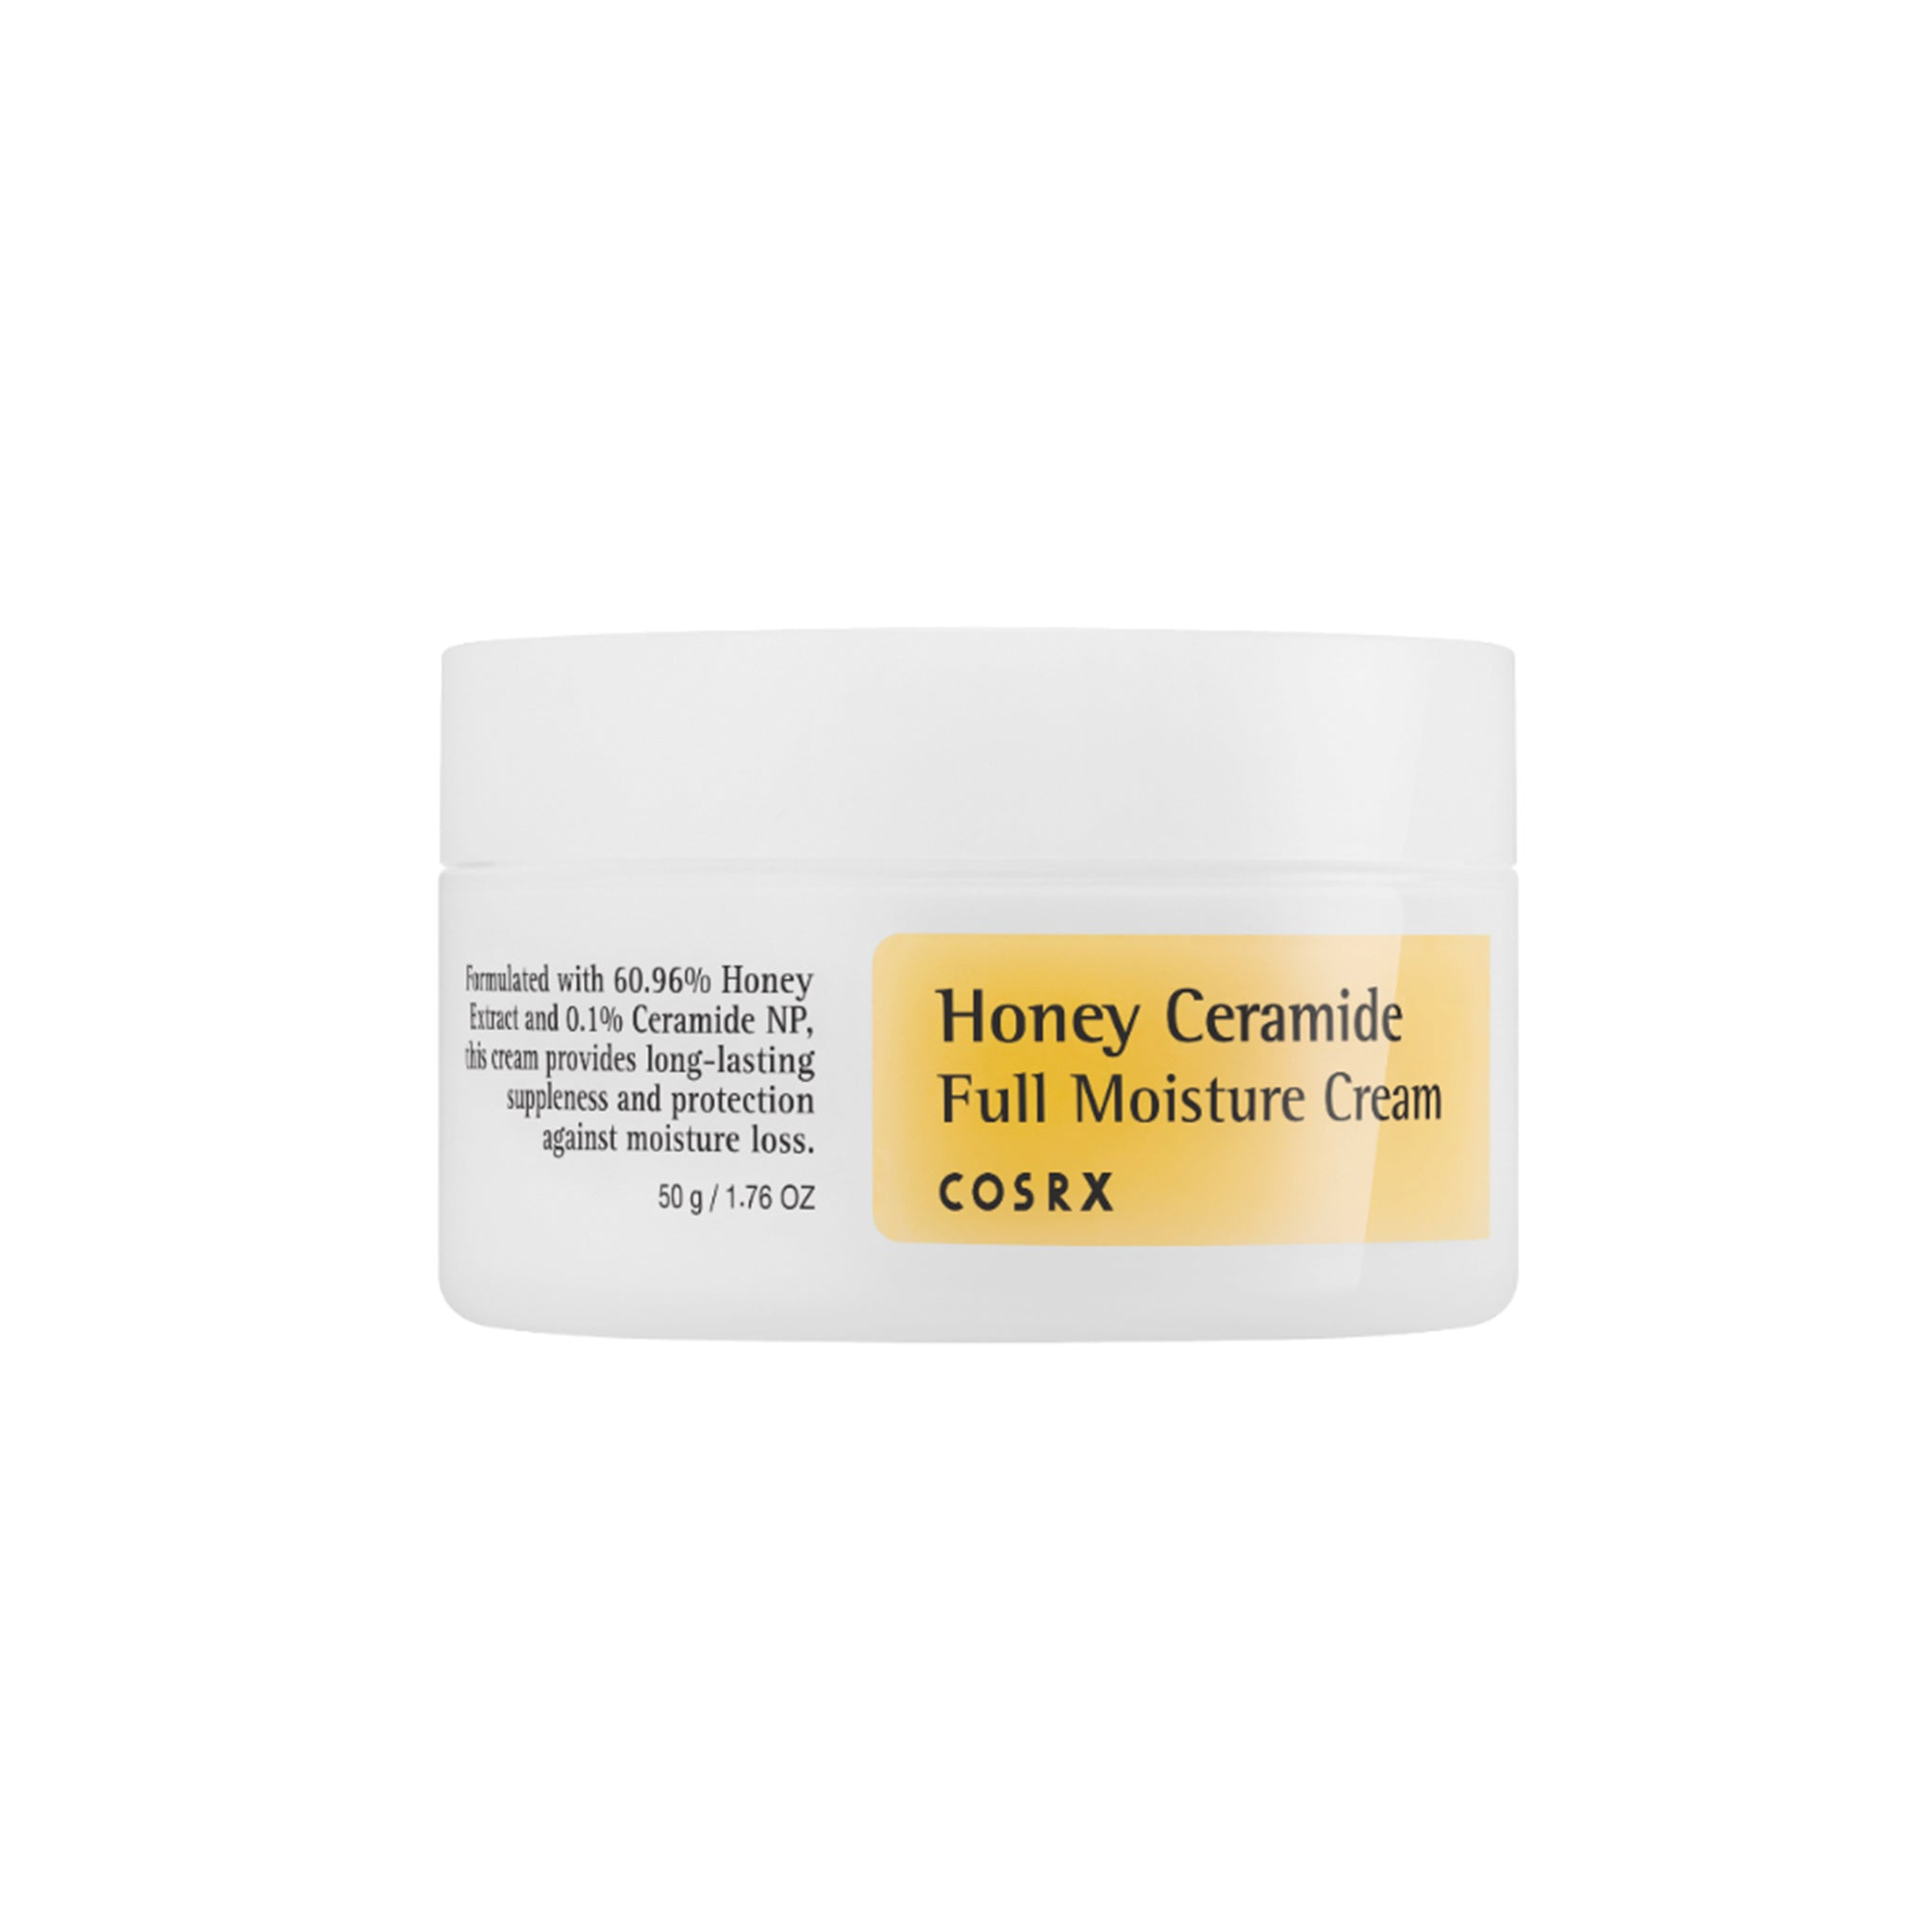 COSRX Honey Ceramide Full Moisture Cream Front